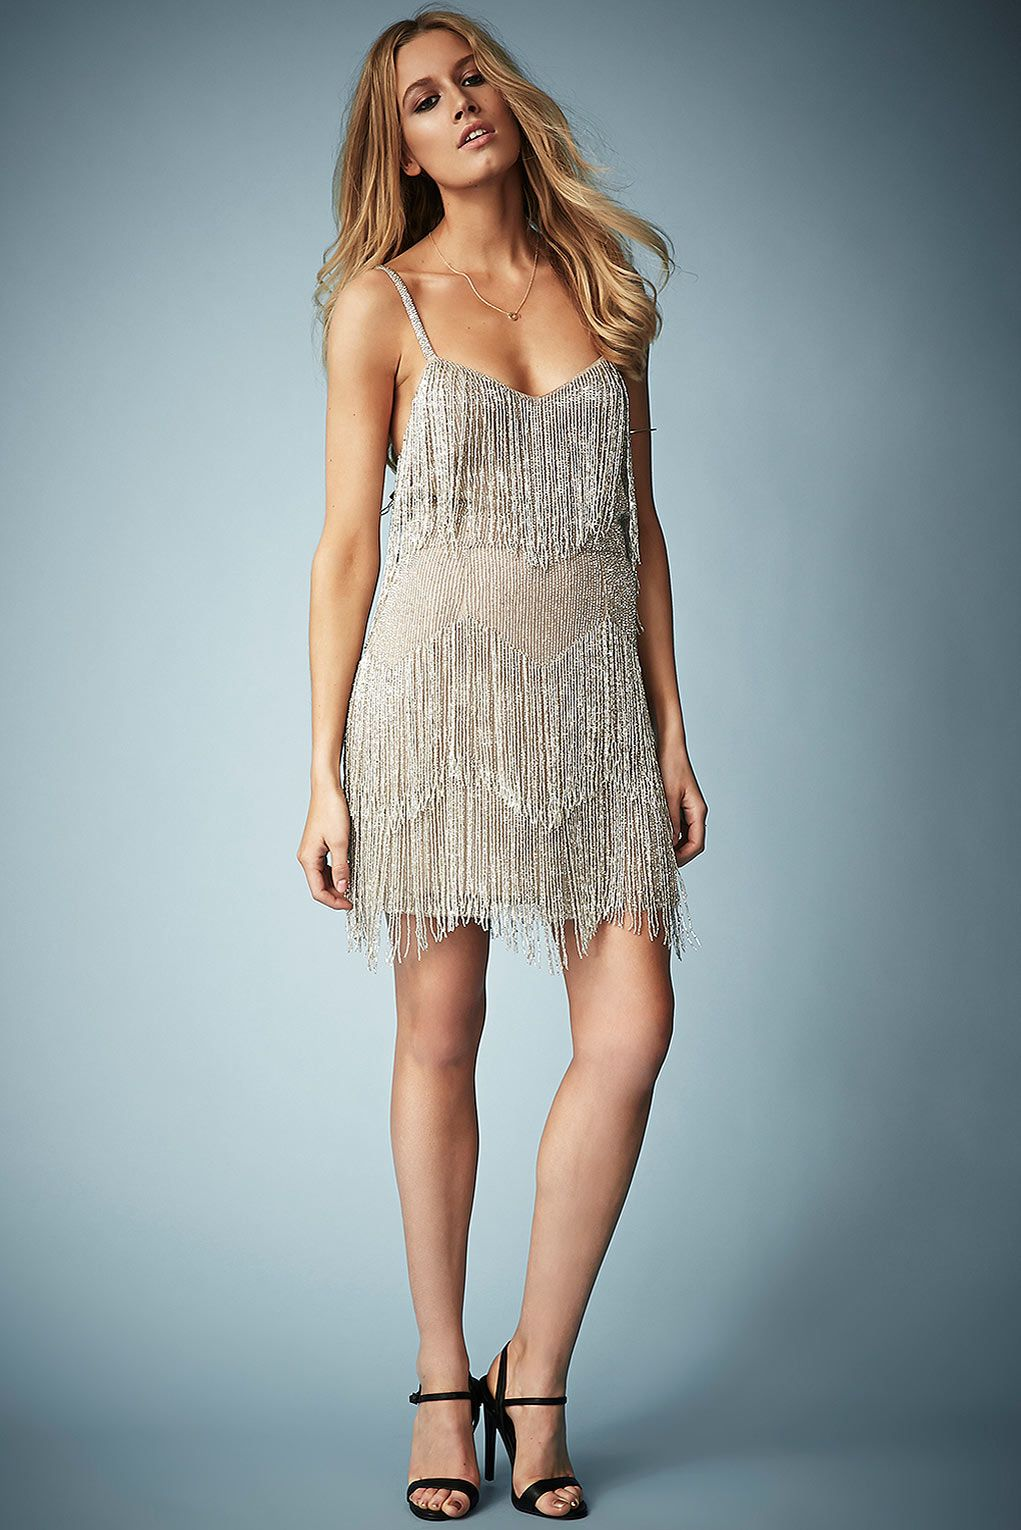 Beaded Fringe Tiered Dress by Kate Moss for Topshop - Kate Moss for ...